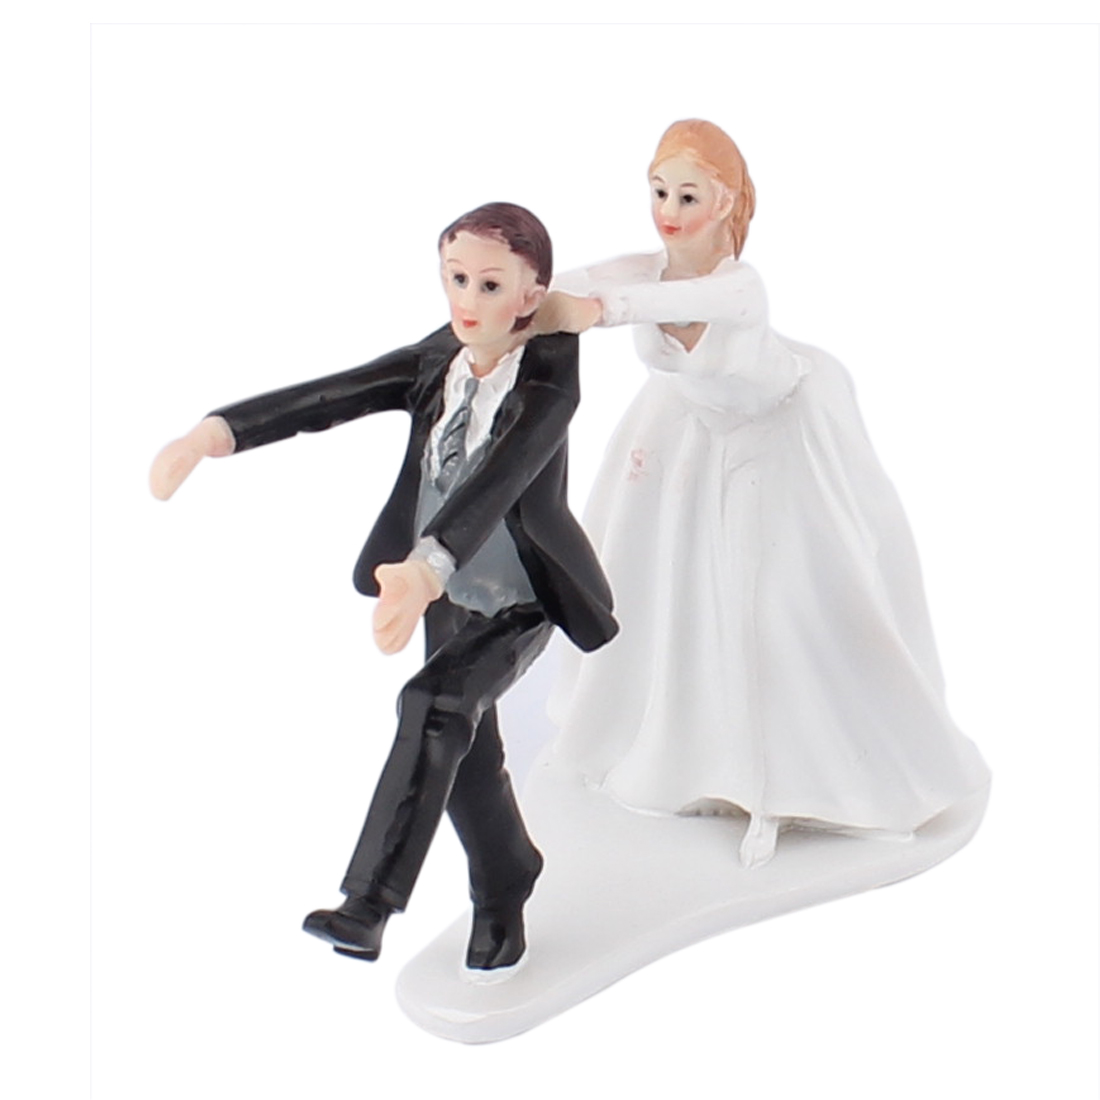 Bride Catching Groom Couple Humor Figurine Wedding Cake Topper Decoration Gift